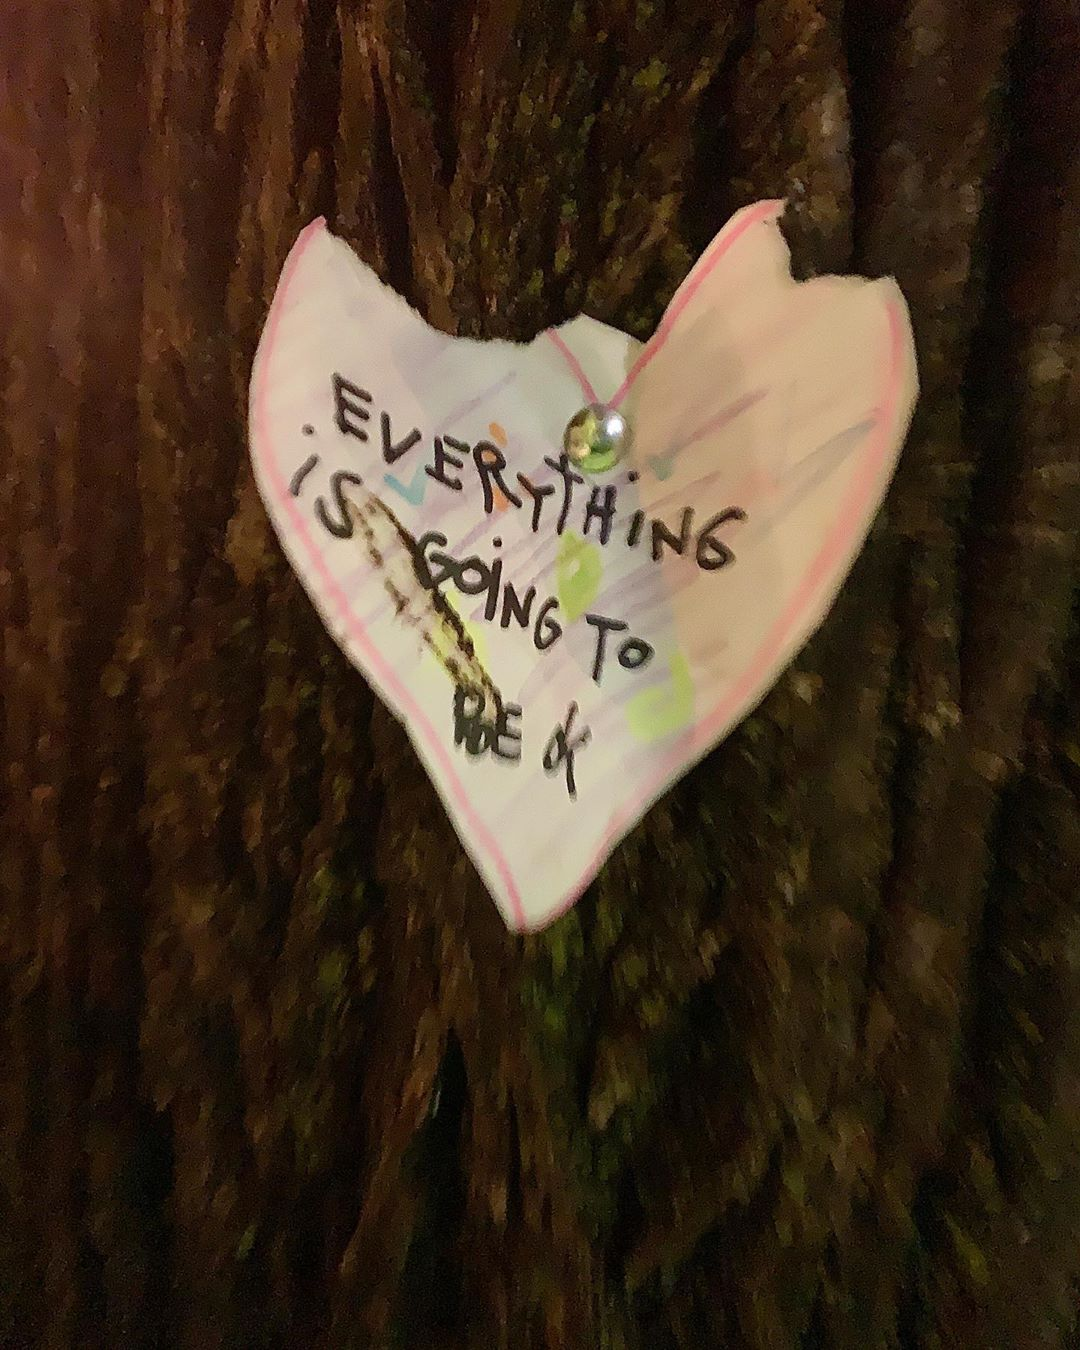 We walked our dogs safely away from everyone yet still connected to humanity by these homemade messages on the trees in our neighborhood. ❤️